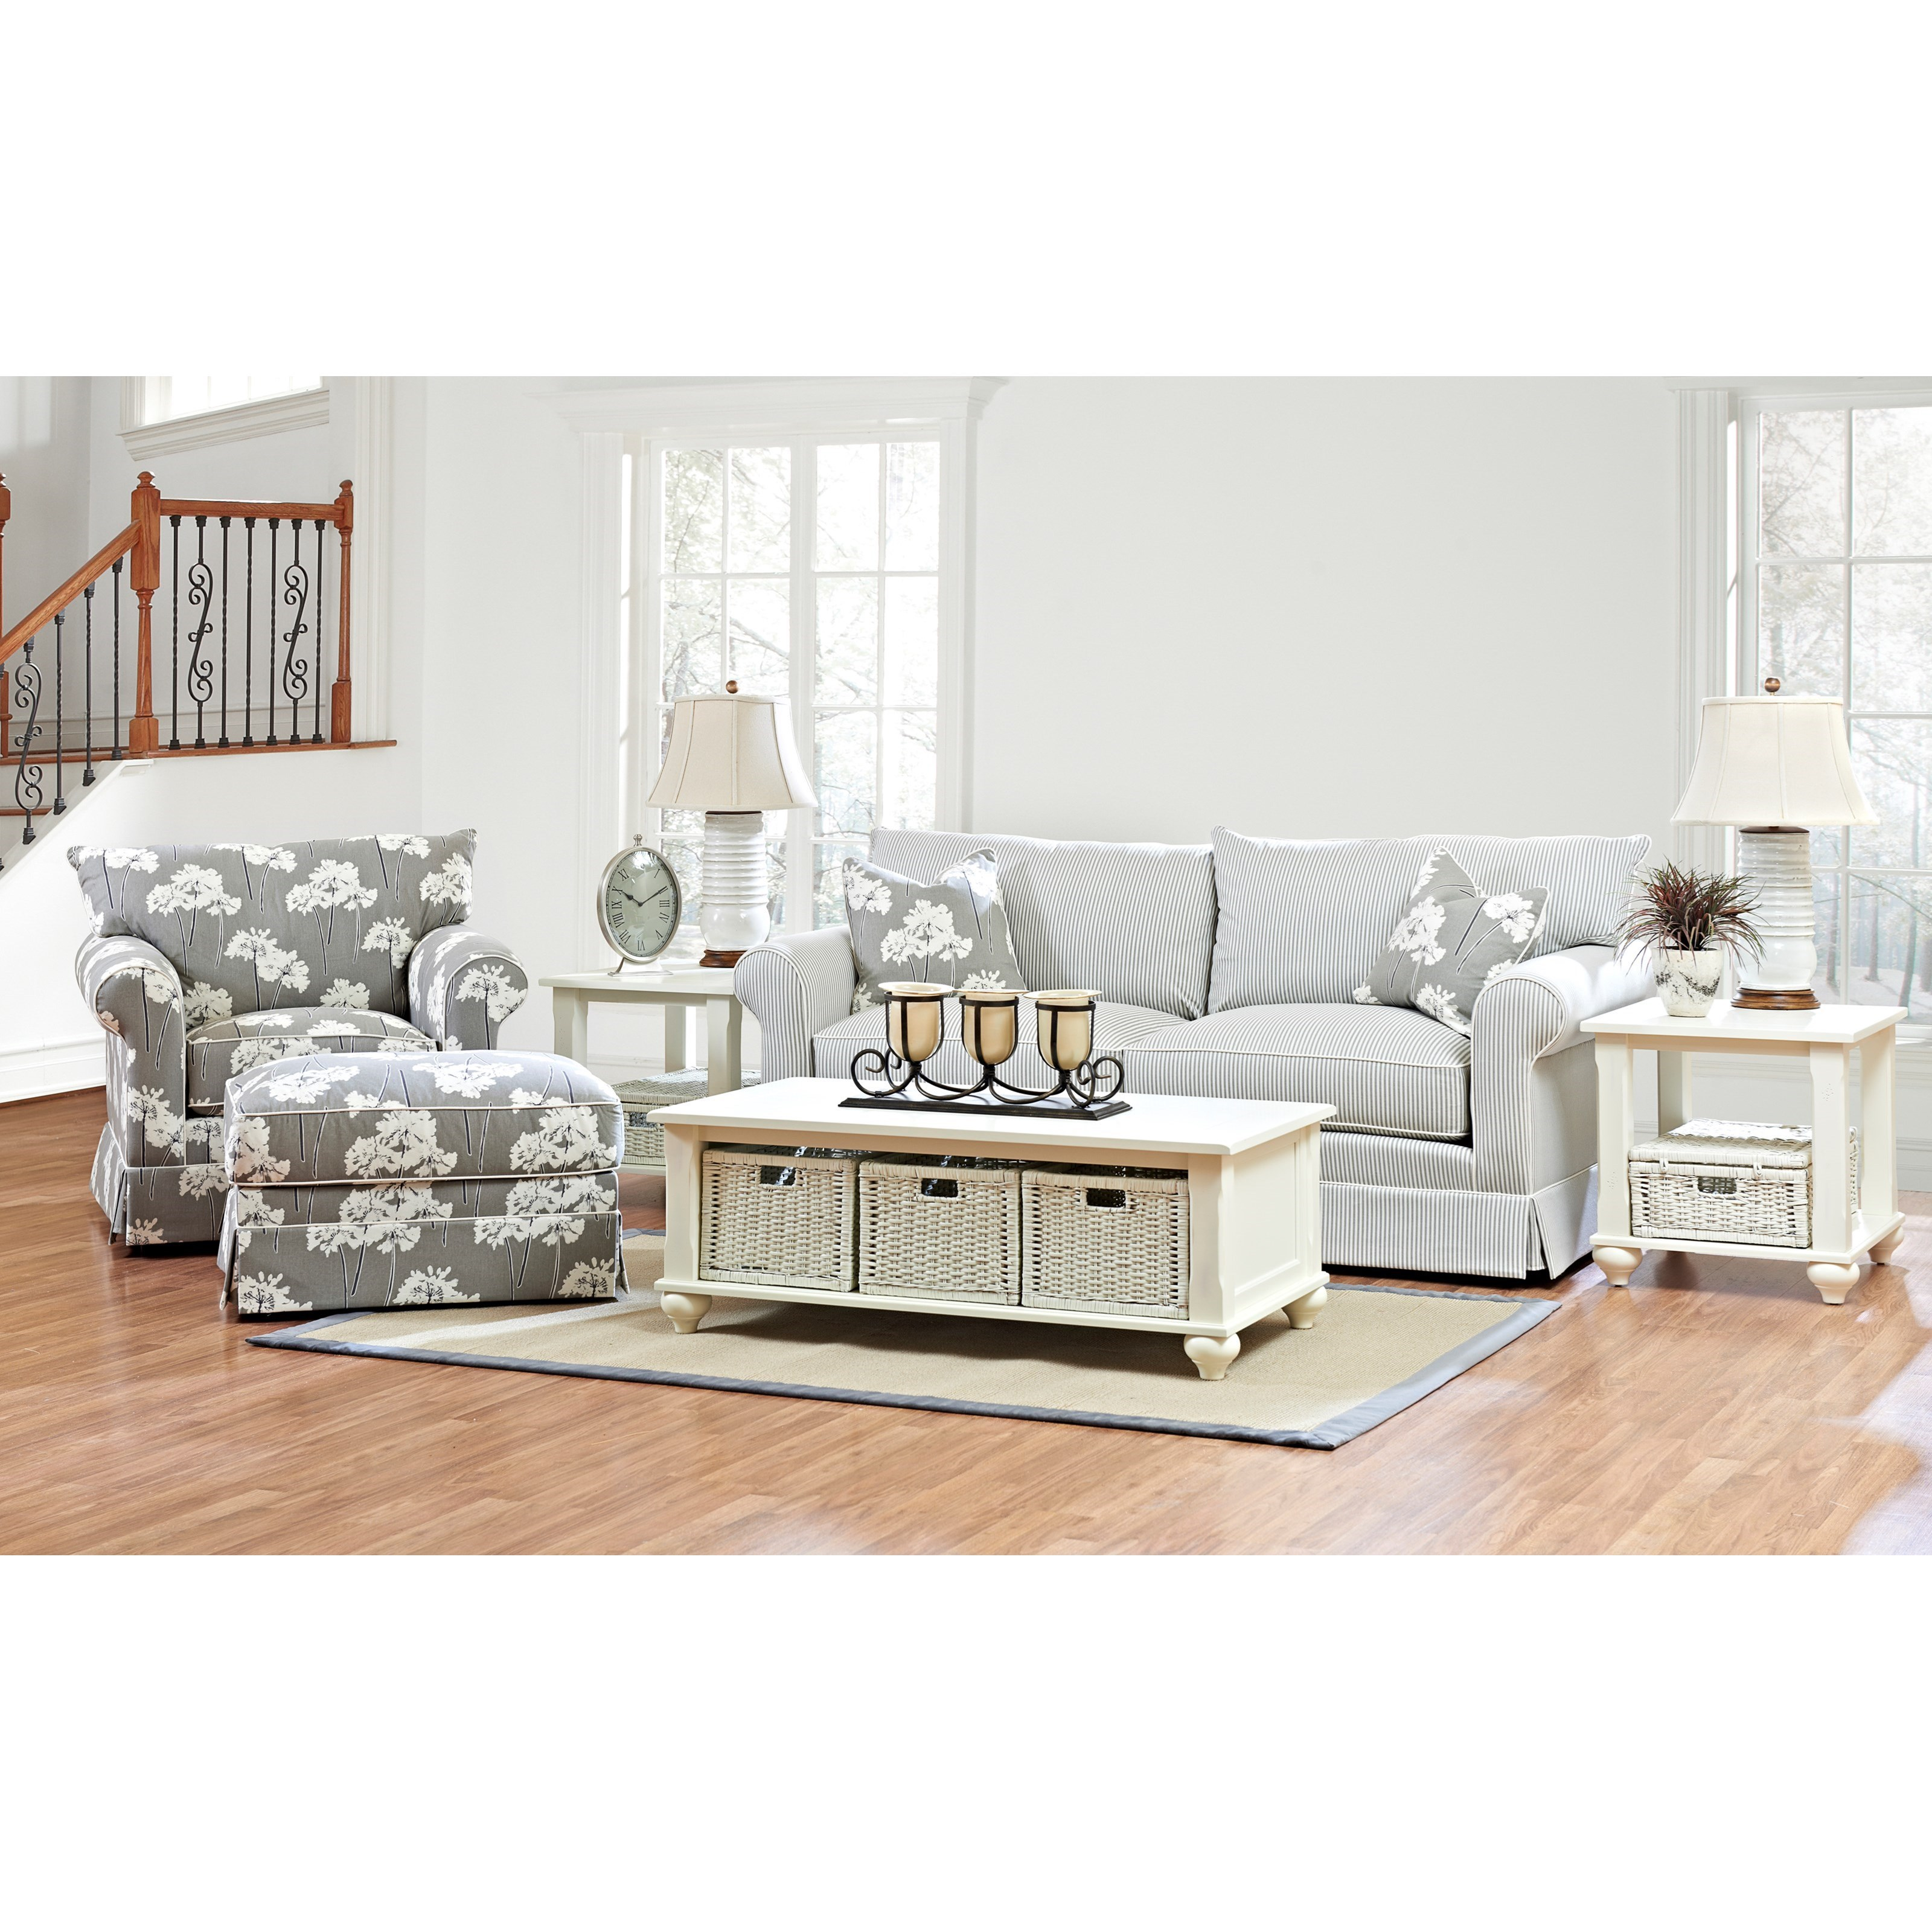 Jenny Living Room Group by Klaussner at Johnny Janosik